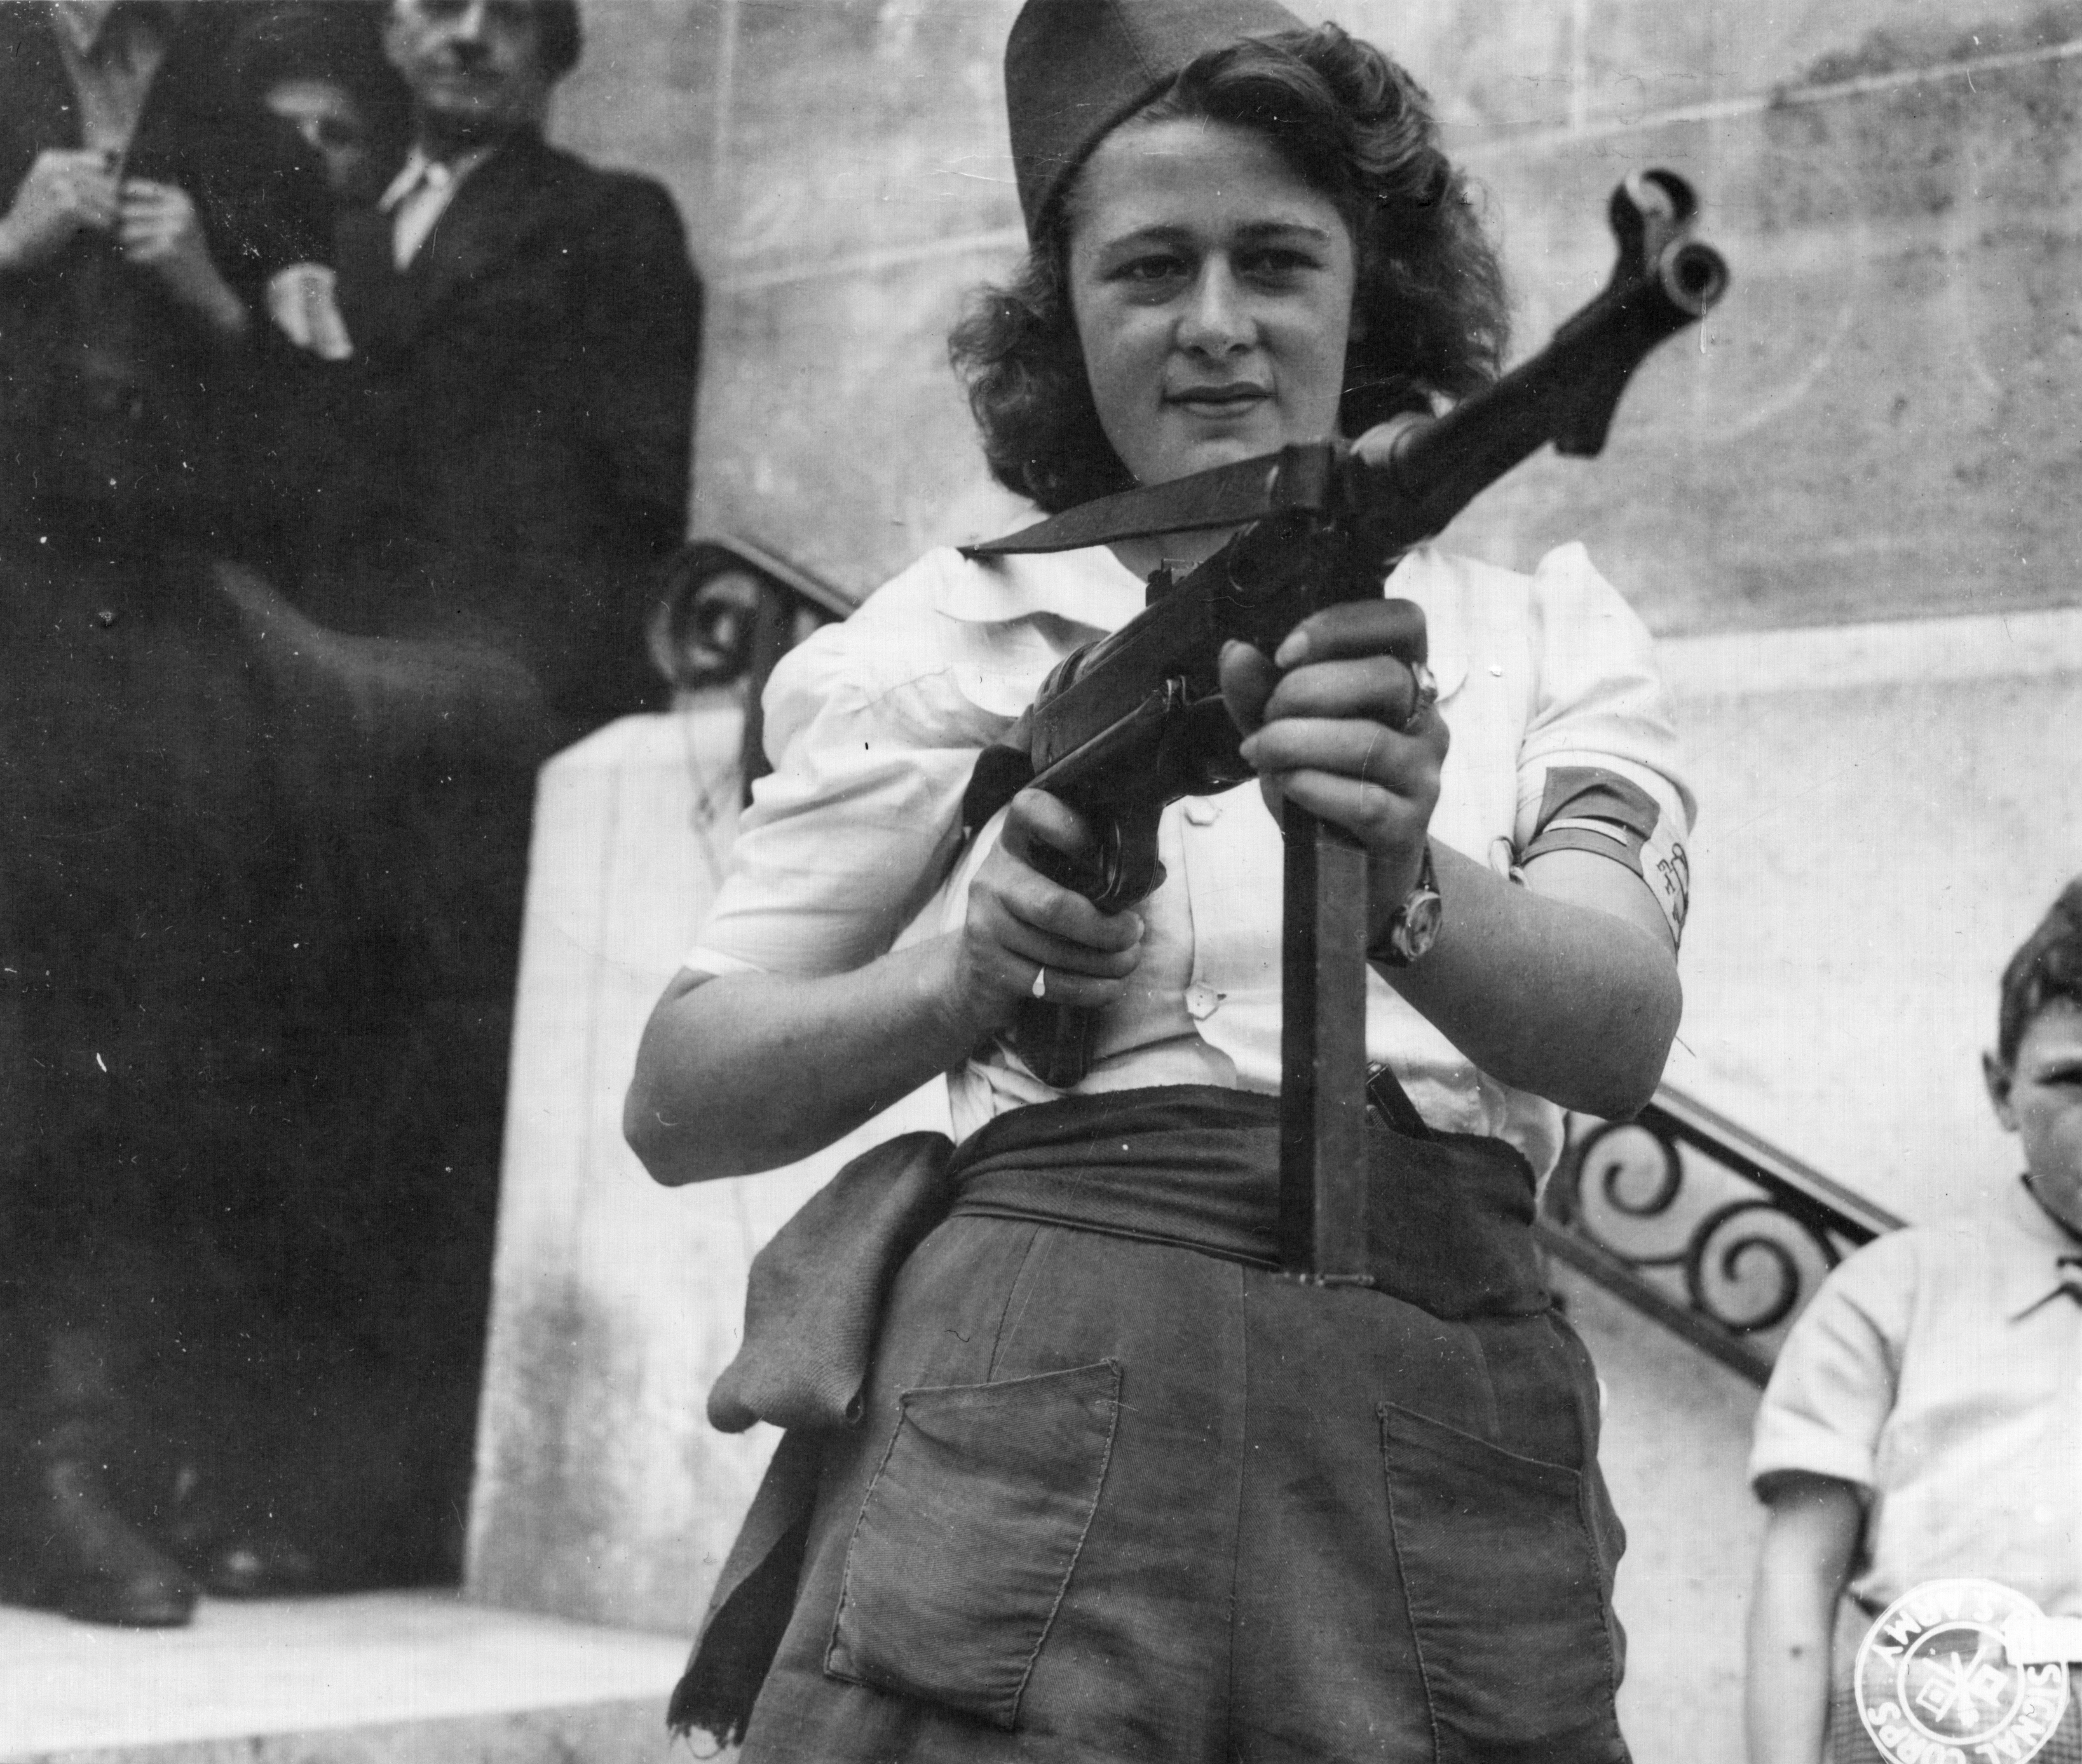 https://upload.wikimedia.org/wikipedia/commons/2/27/%22Nicole%22_a_French_Partisan_Who_Captured_25_Nazis_in_the_Chartres_Area,_in_Addition_to_Liquidating_Others,_Poses_with..._-_NARA_-_5957431_-_cropped.jpg